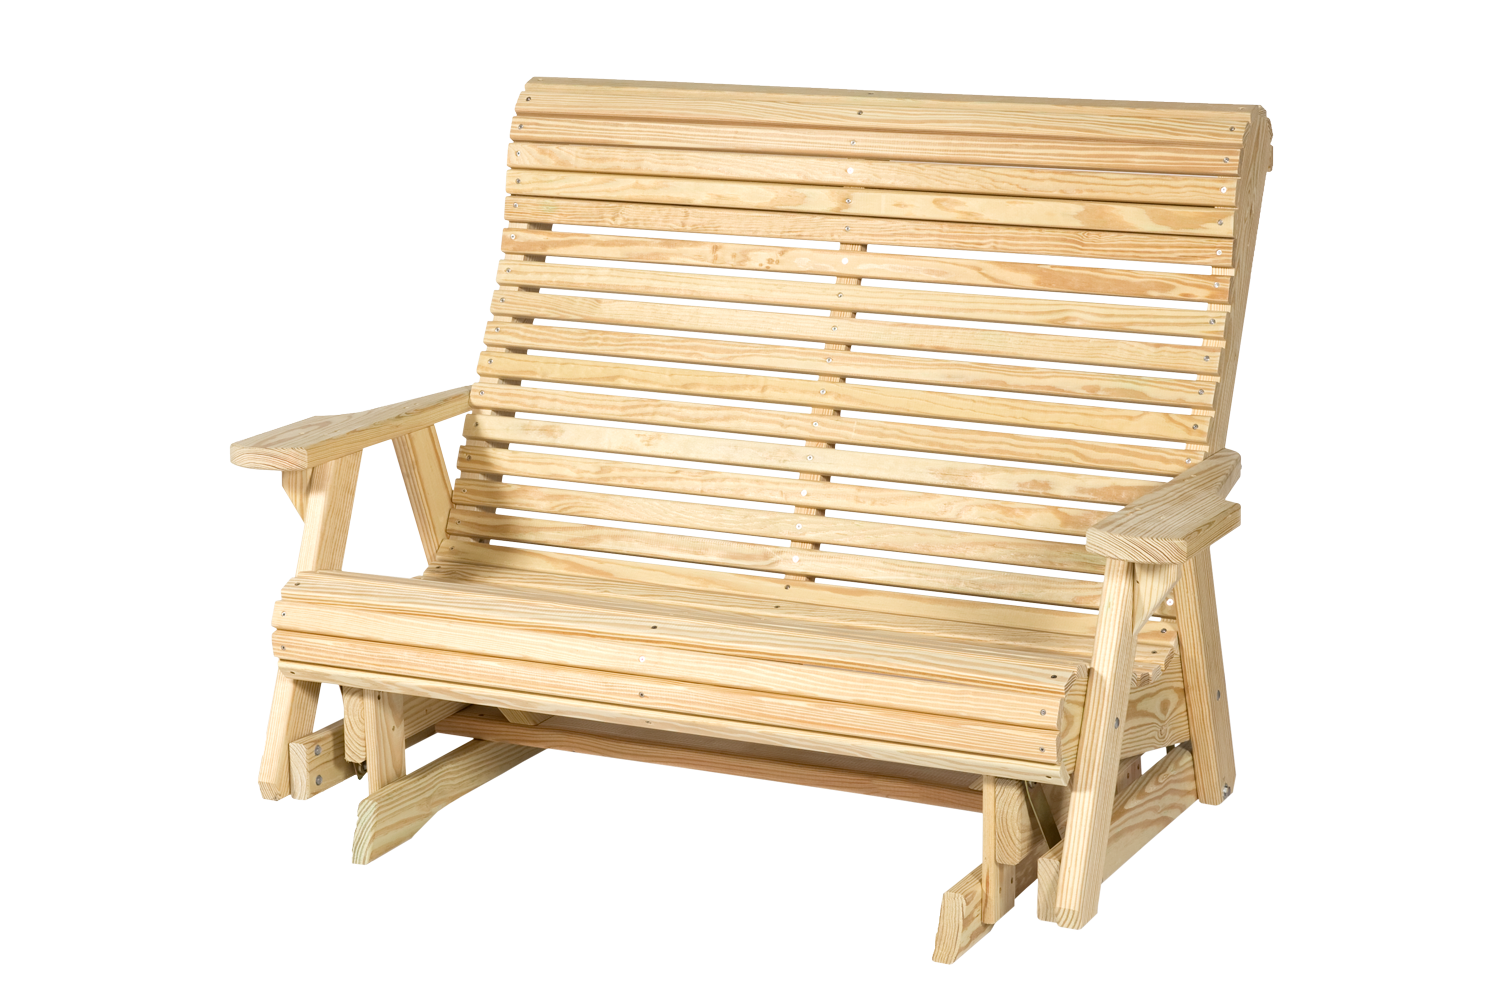 Rollback 4 39 5 39 gliders outdoor wooden furniture for Outdoor furniture york pa